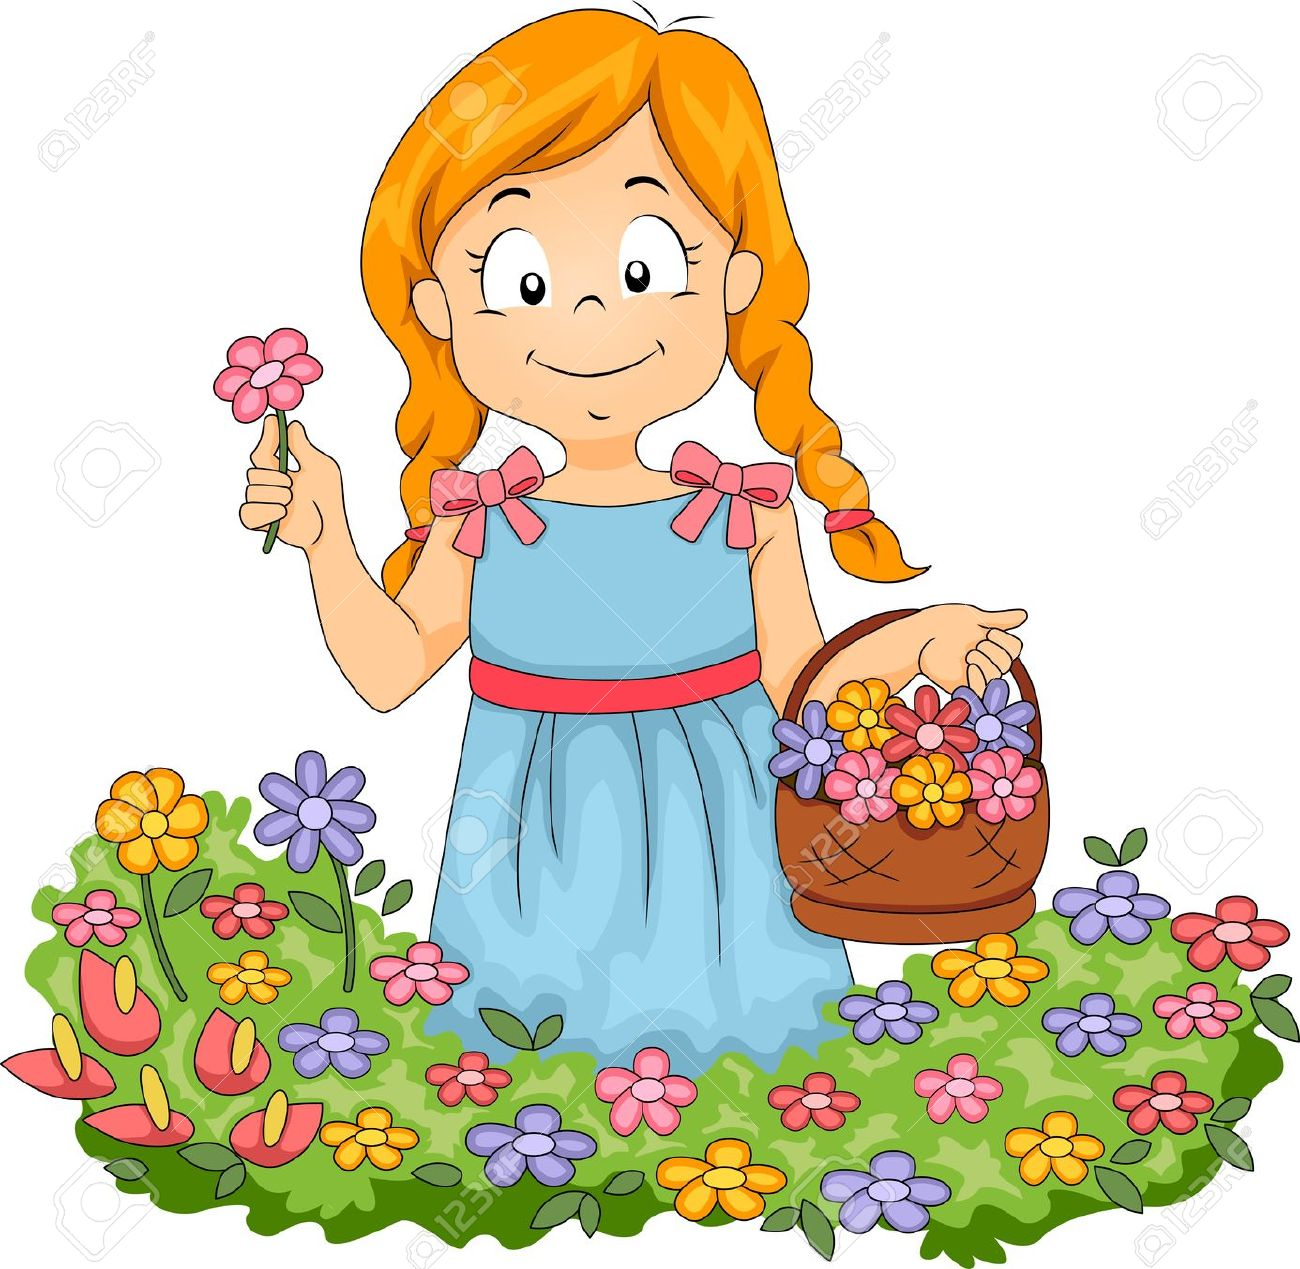 Girl blowing bubbles in flower patch cartoon clipart.